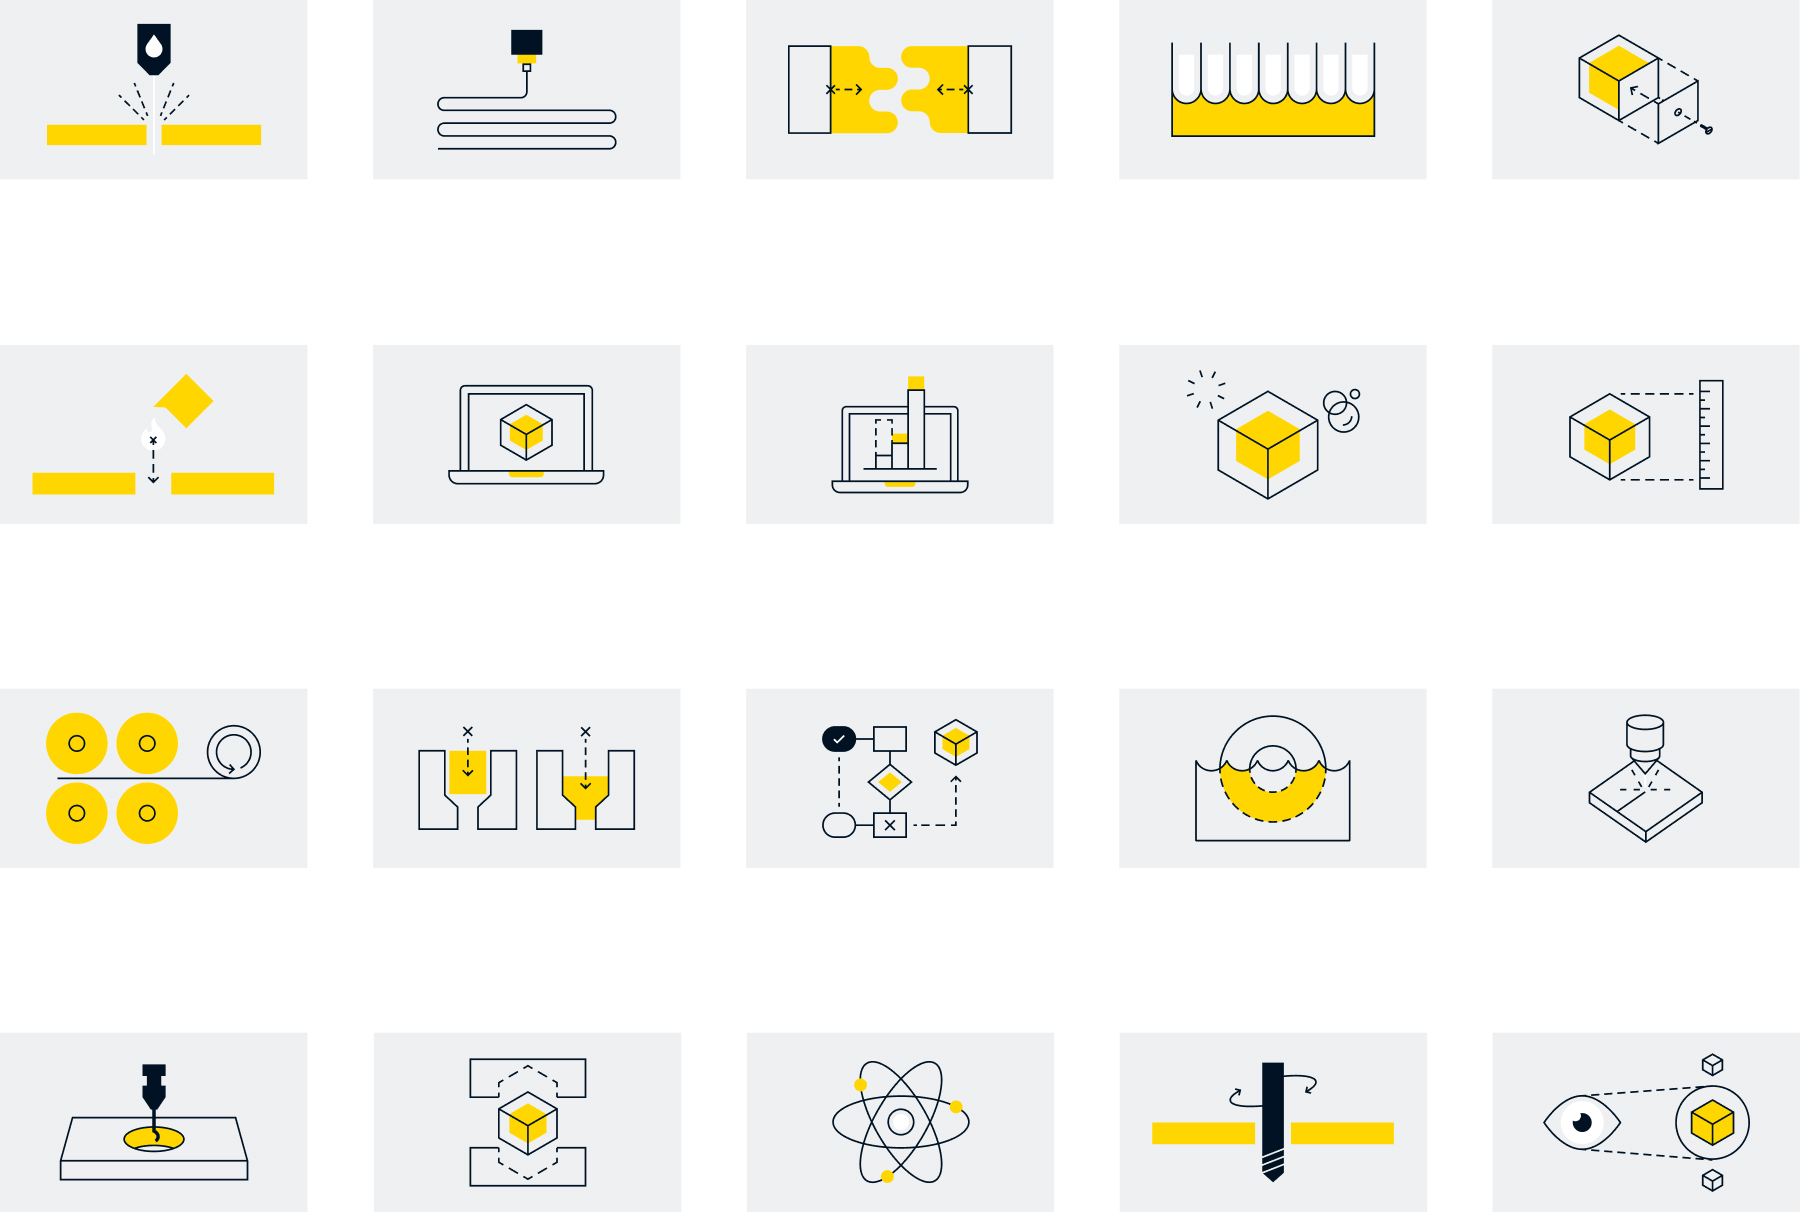 Grid of types of services MW Industries offers depicted via small illustrations